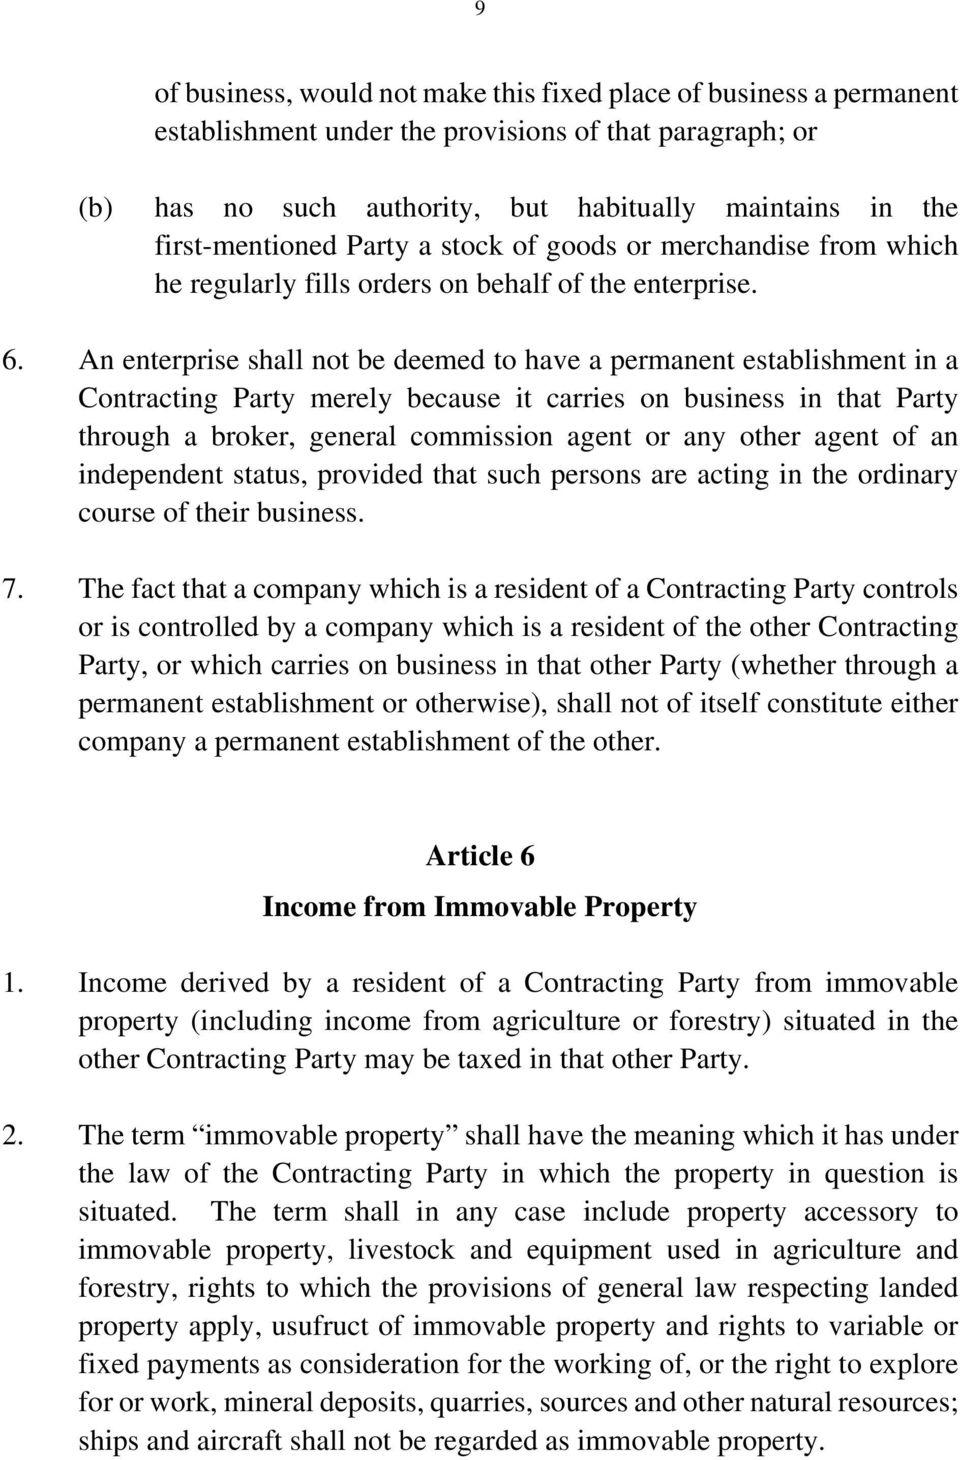 An enterprise shall not be deemed to have a permanent establishment in a Contracting Party merely because it carries on business in that Party through a broker, general commission agent or any other